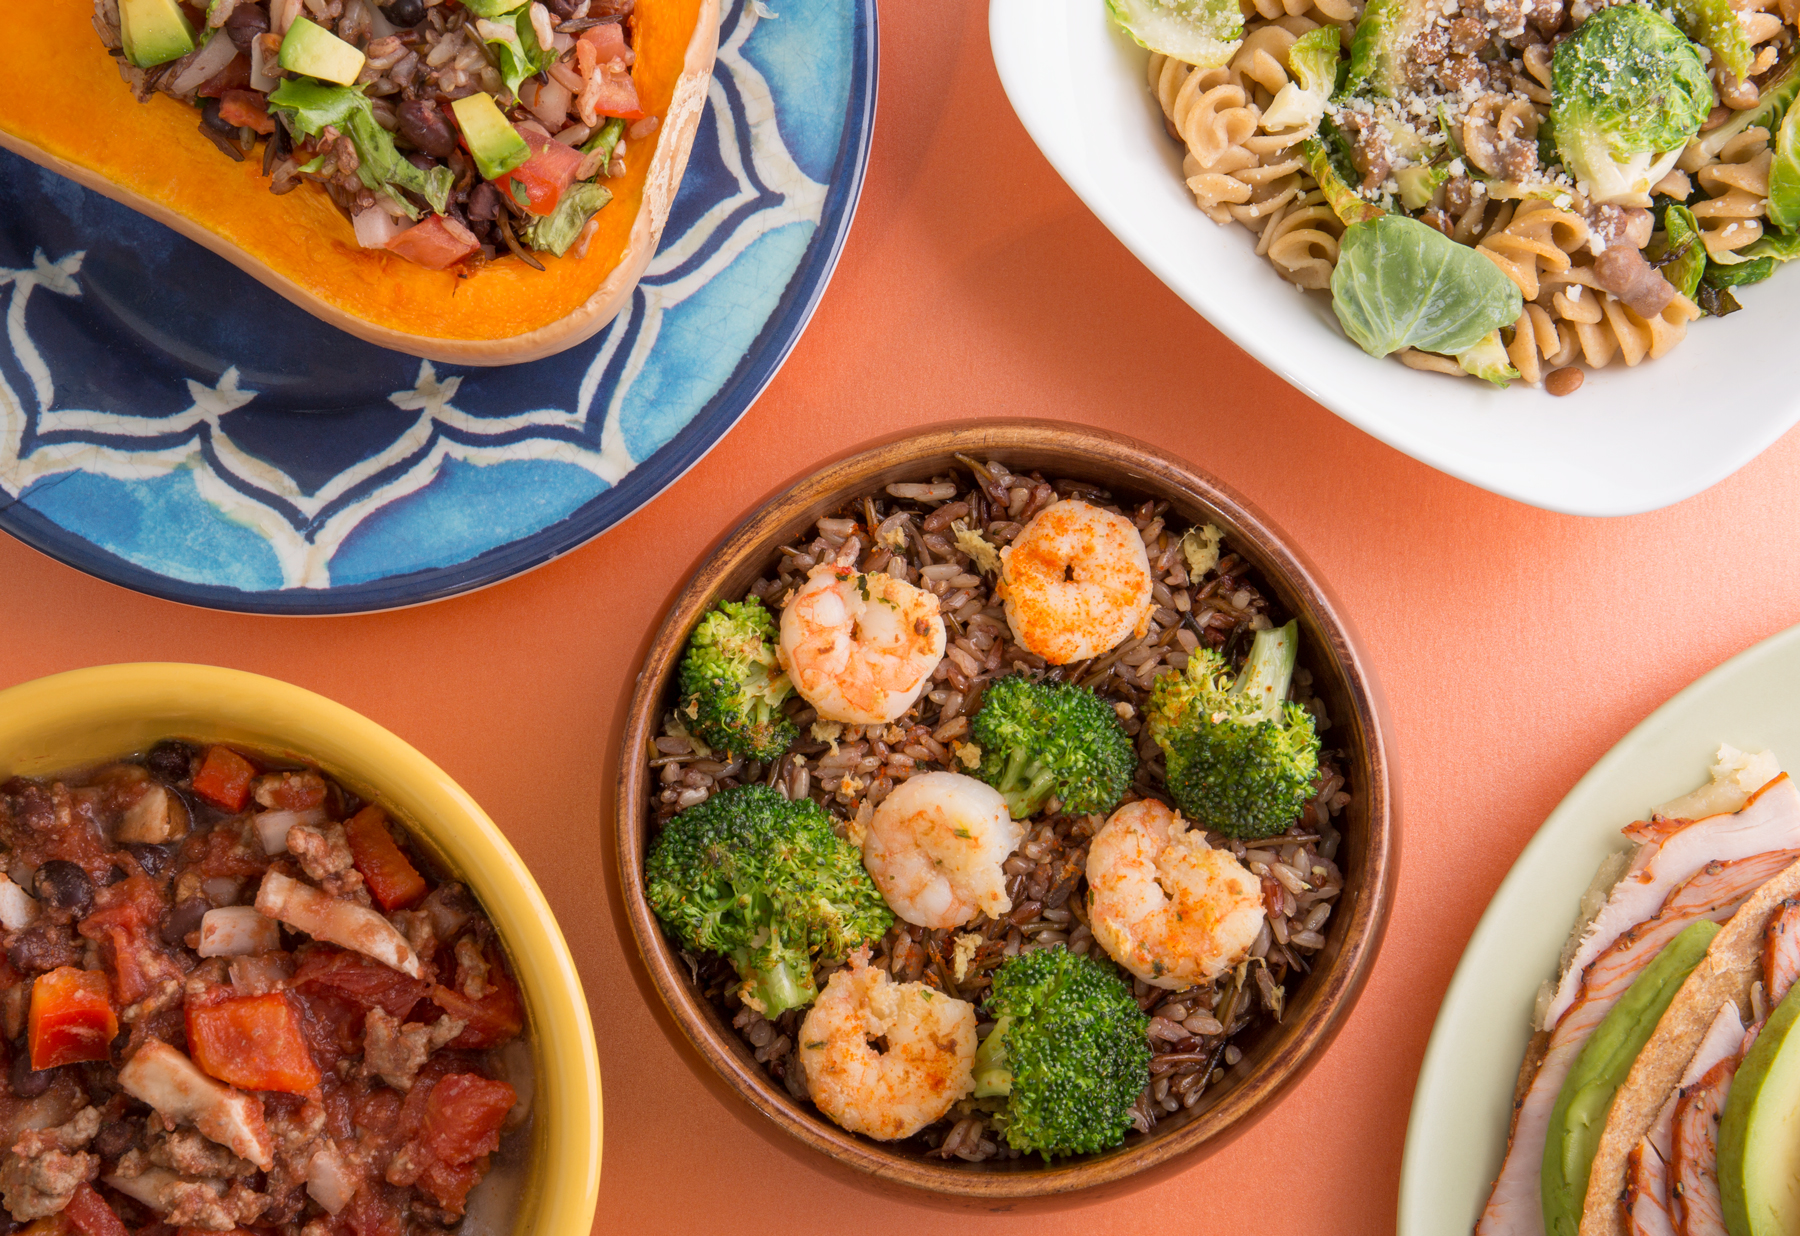 The 5 basic healthy meal formulas everyone should know greatist forumfinder Images